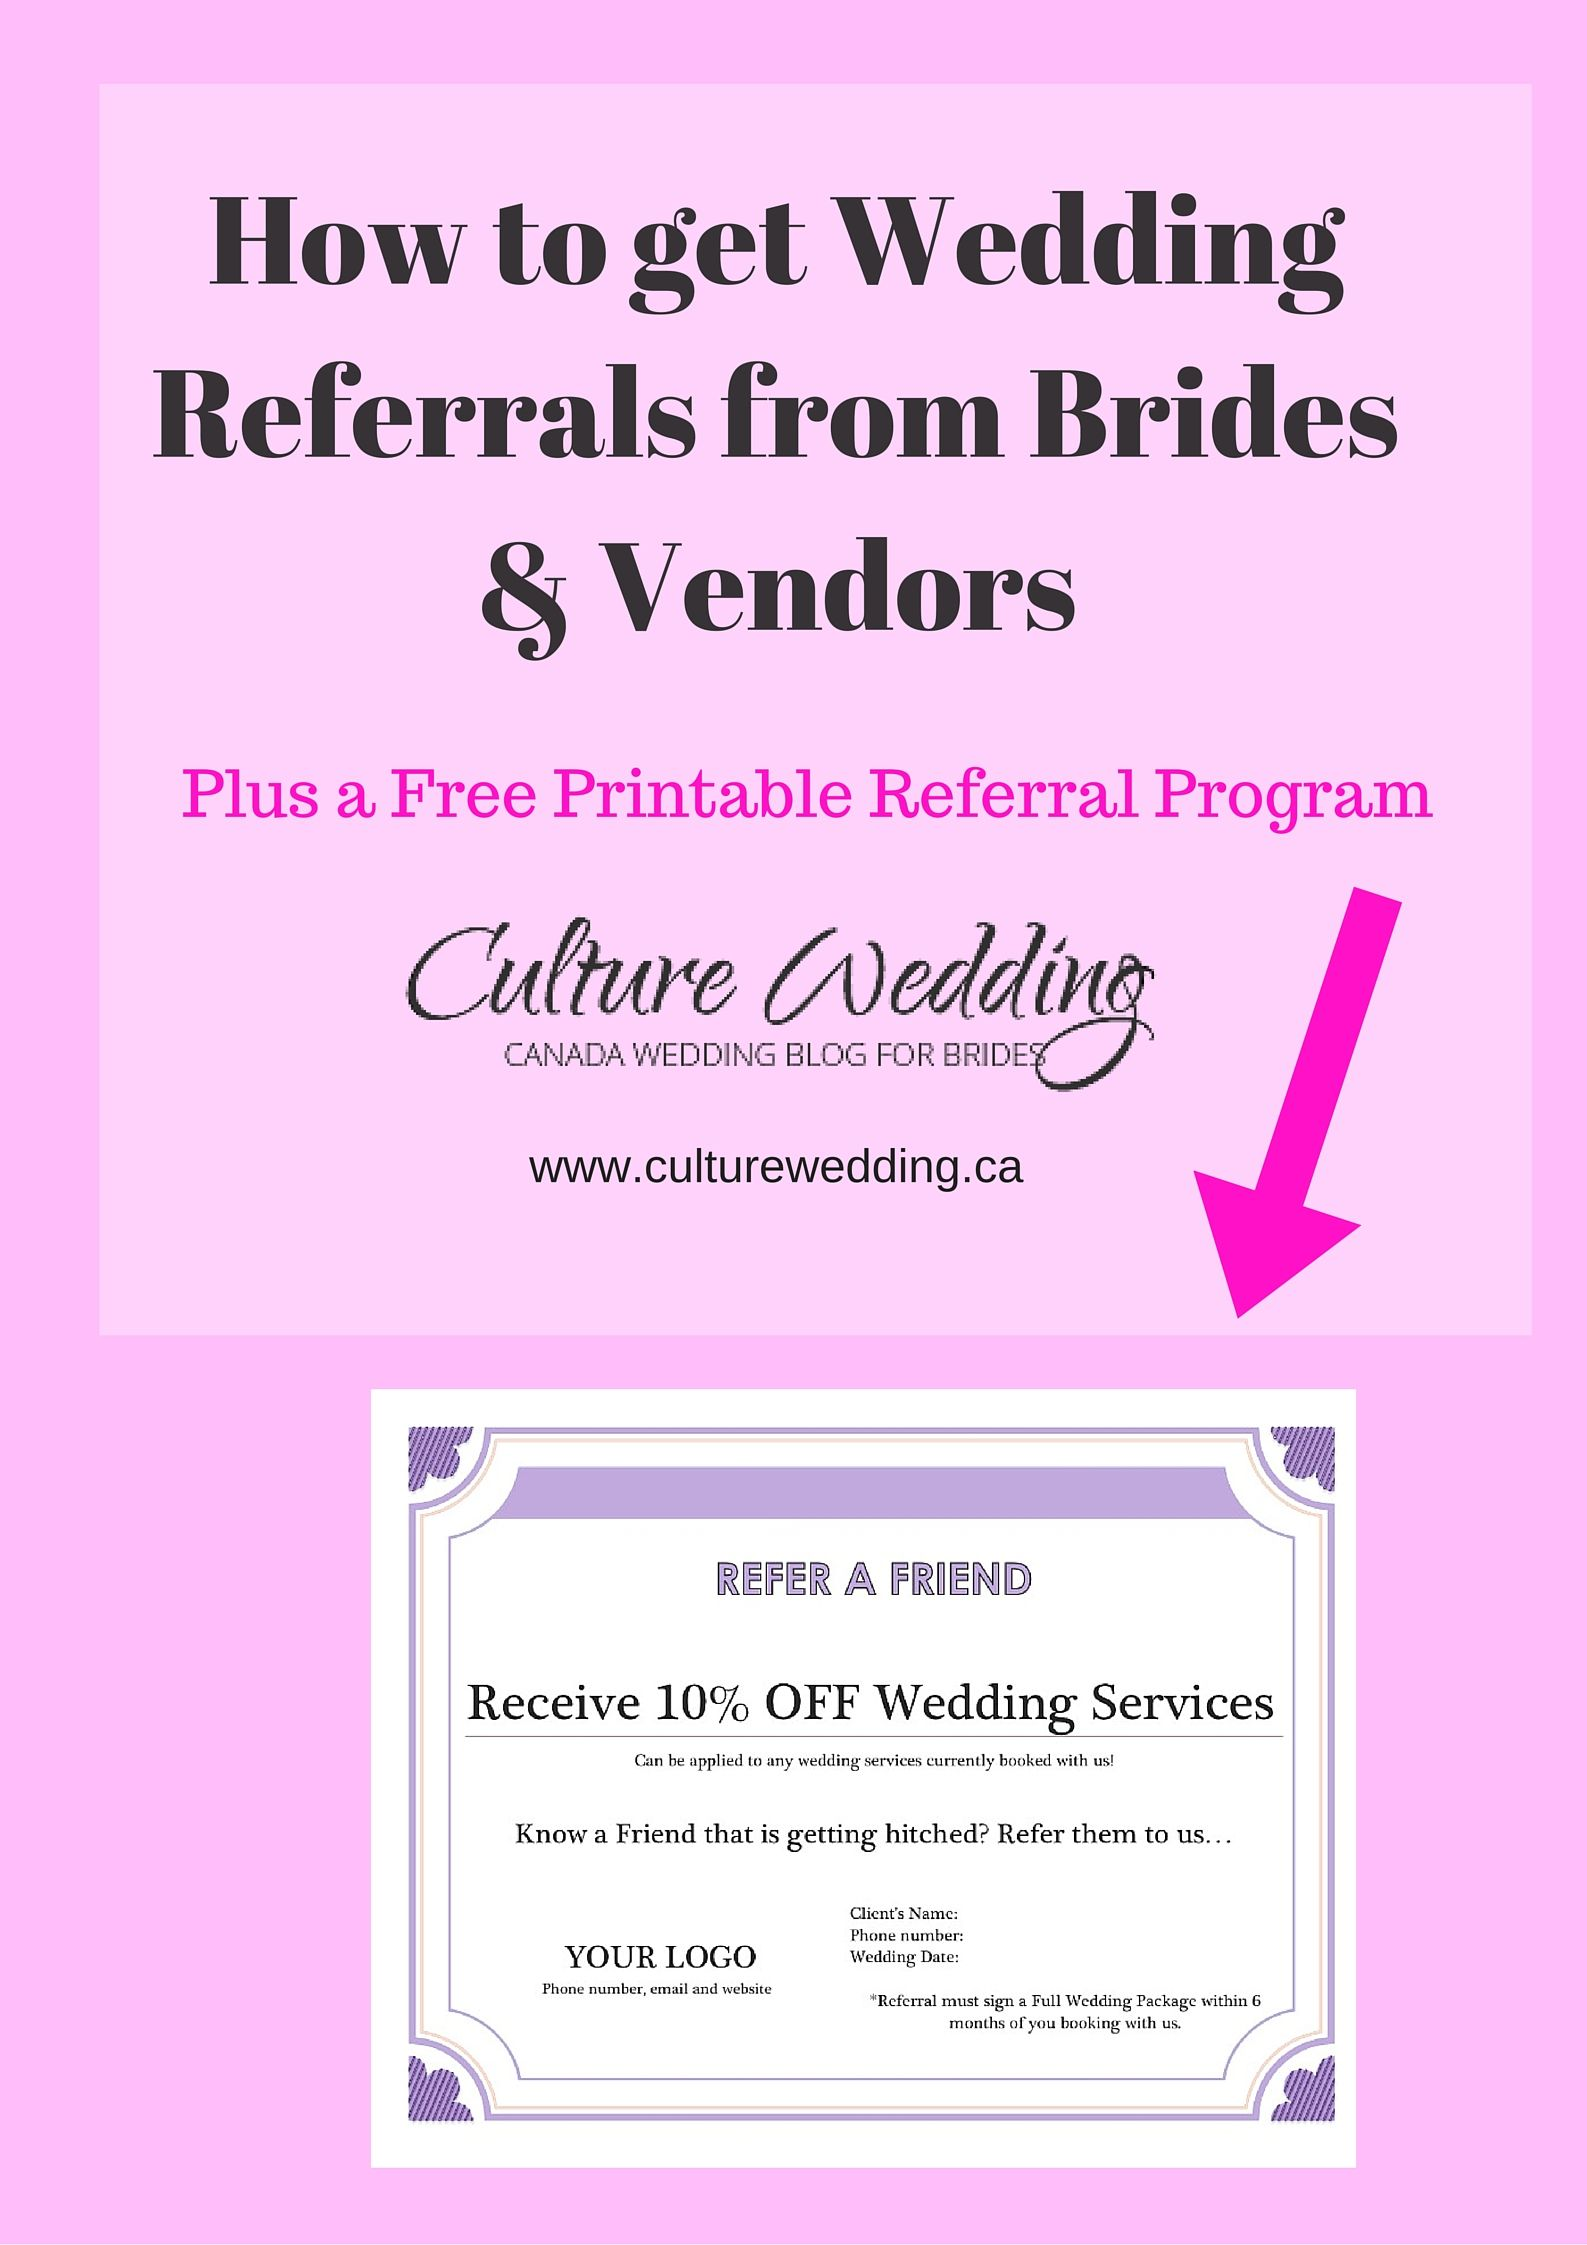 How to get referrals from clients and vendors business wedding event planning business junglespirit Gallery